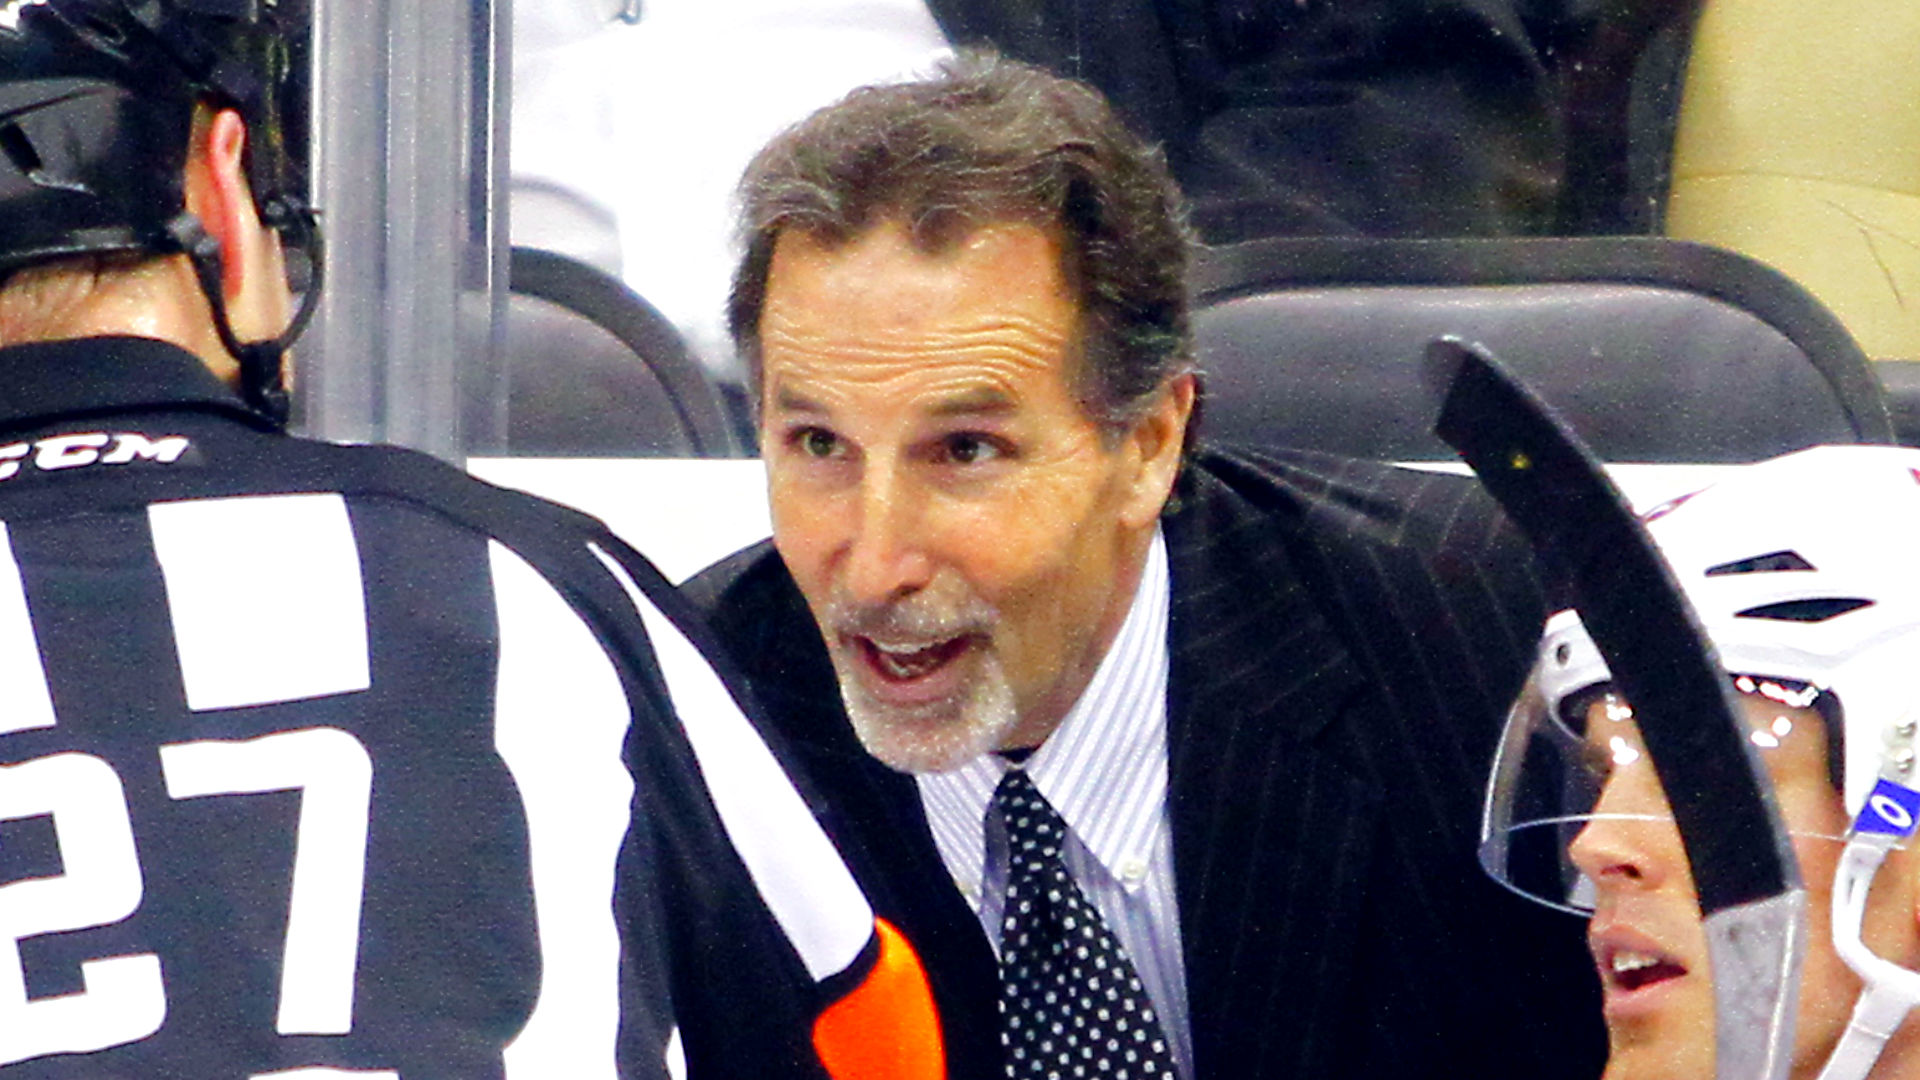 NHL playoffs 2019: Blue Jackets coach John Tortorella hit with fans' beer during goal celebrations, doesn't care